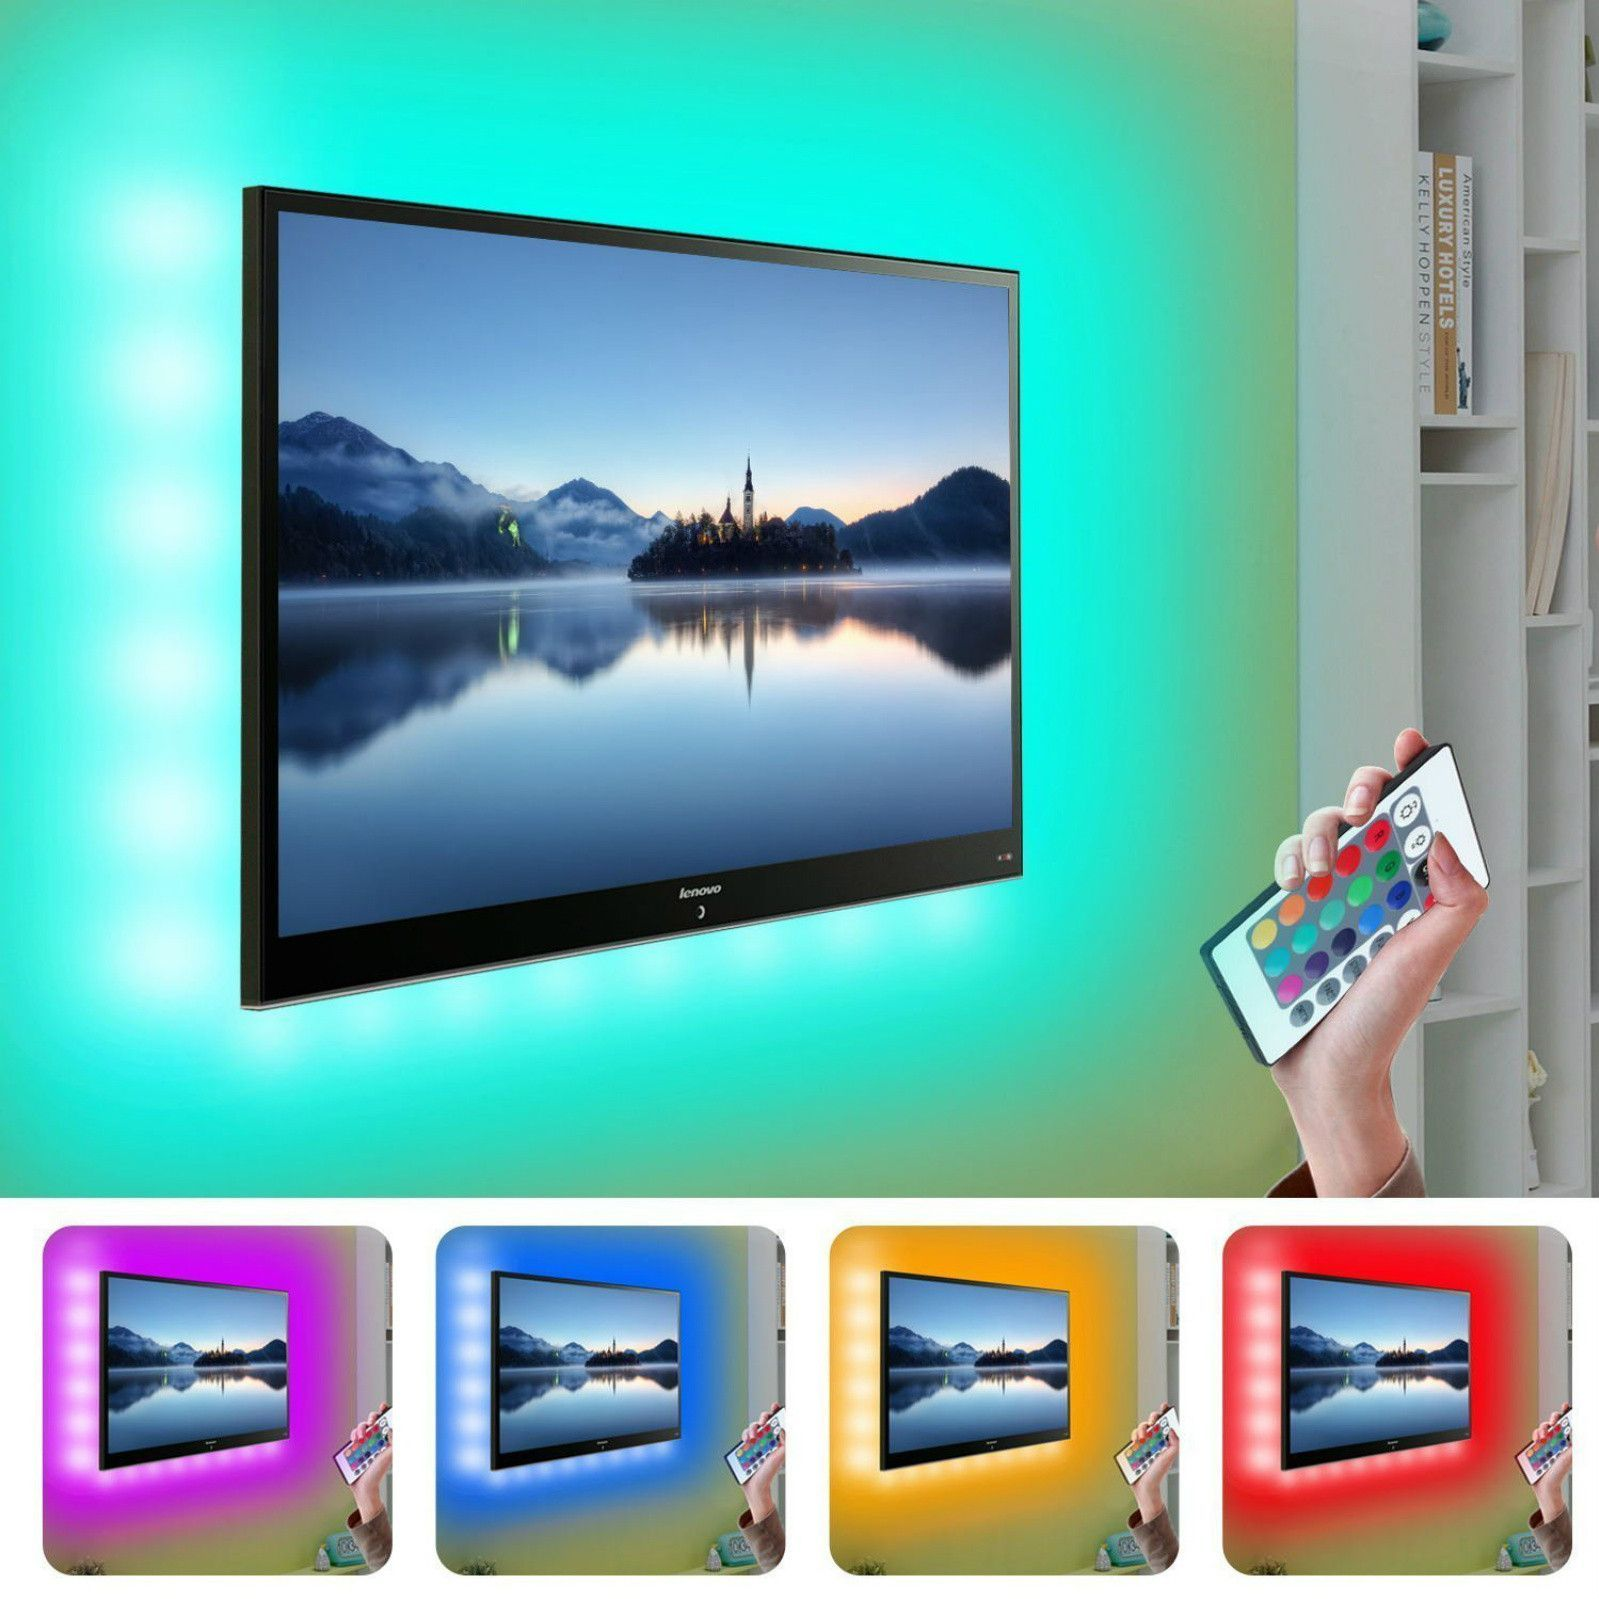 Led Light Strip Tv Backlight W Remote Ideas For The House